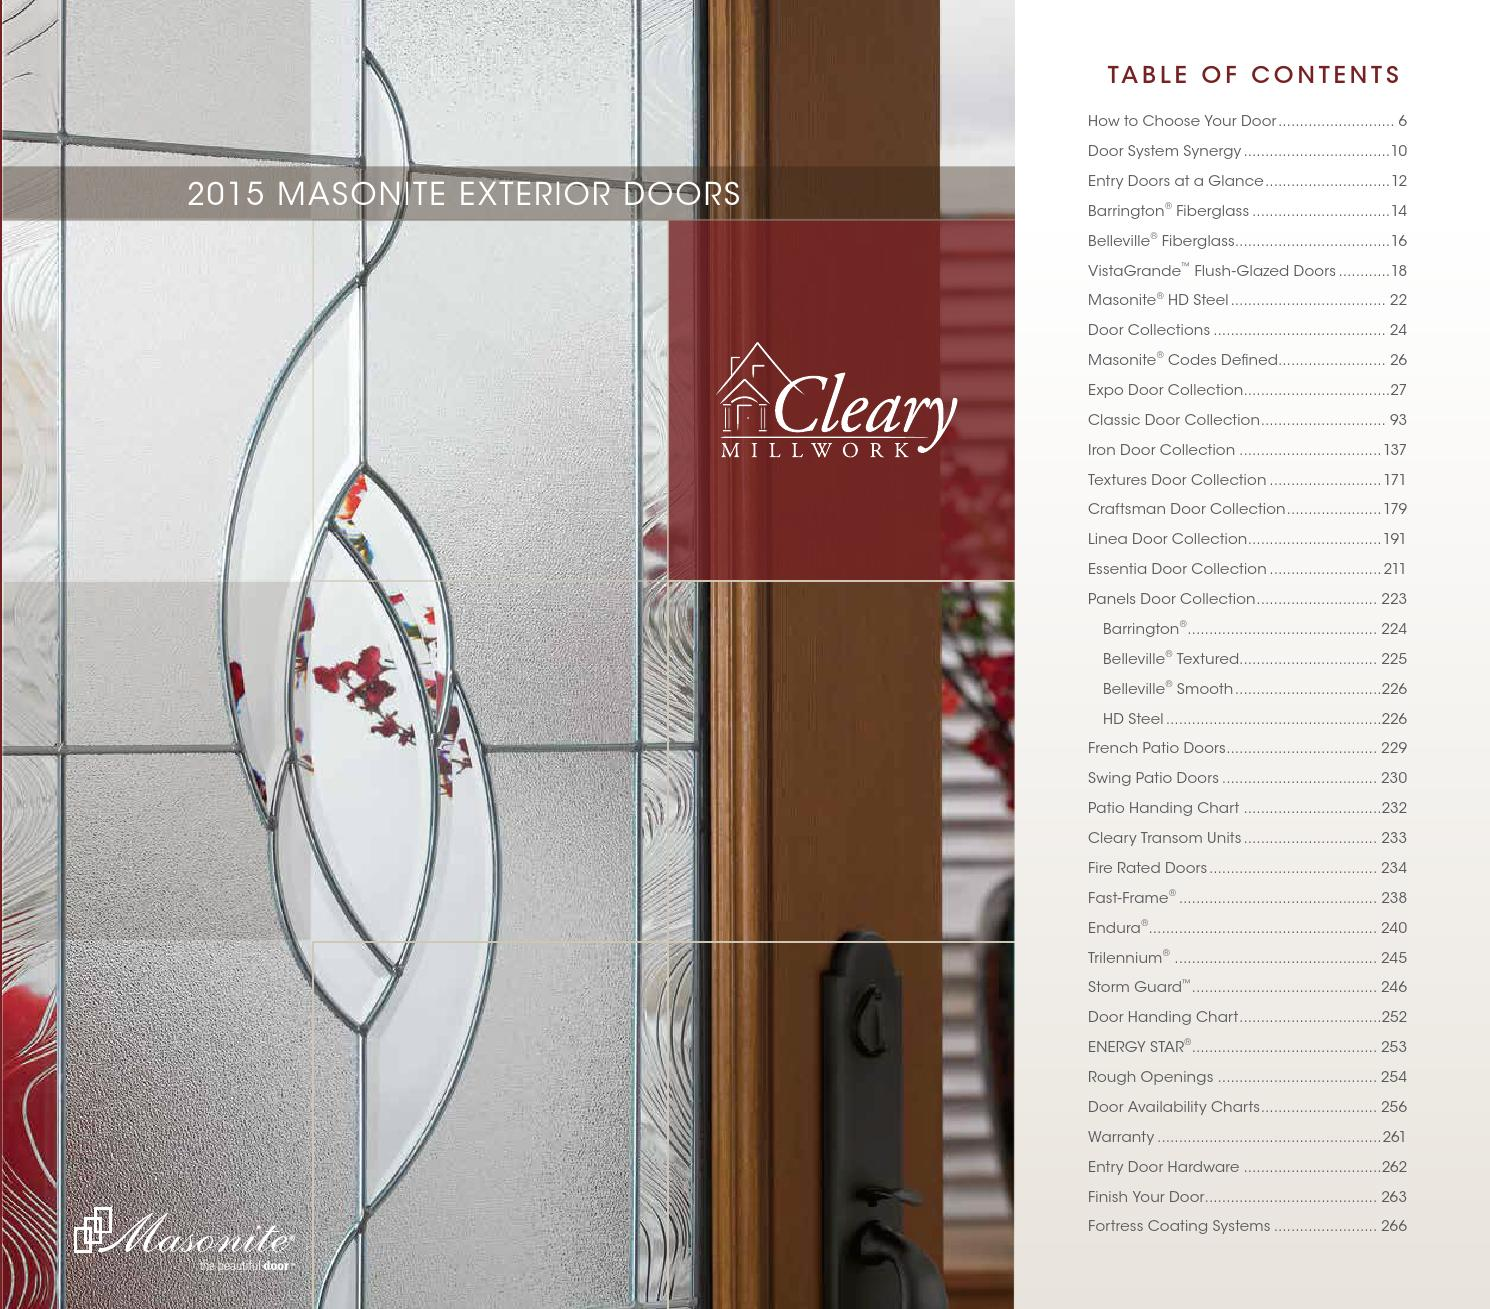 Masonite Exterior Doors 2015 by clearymillwork - issuu